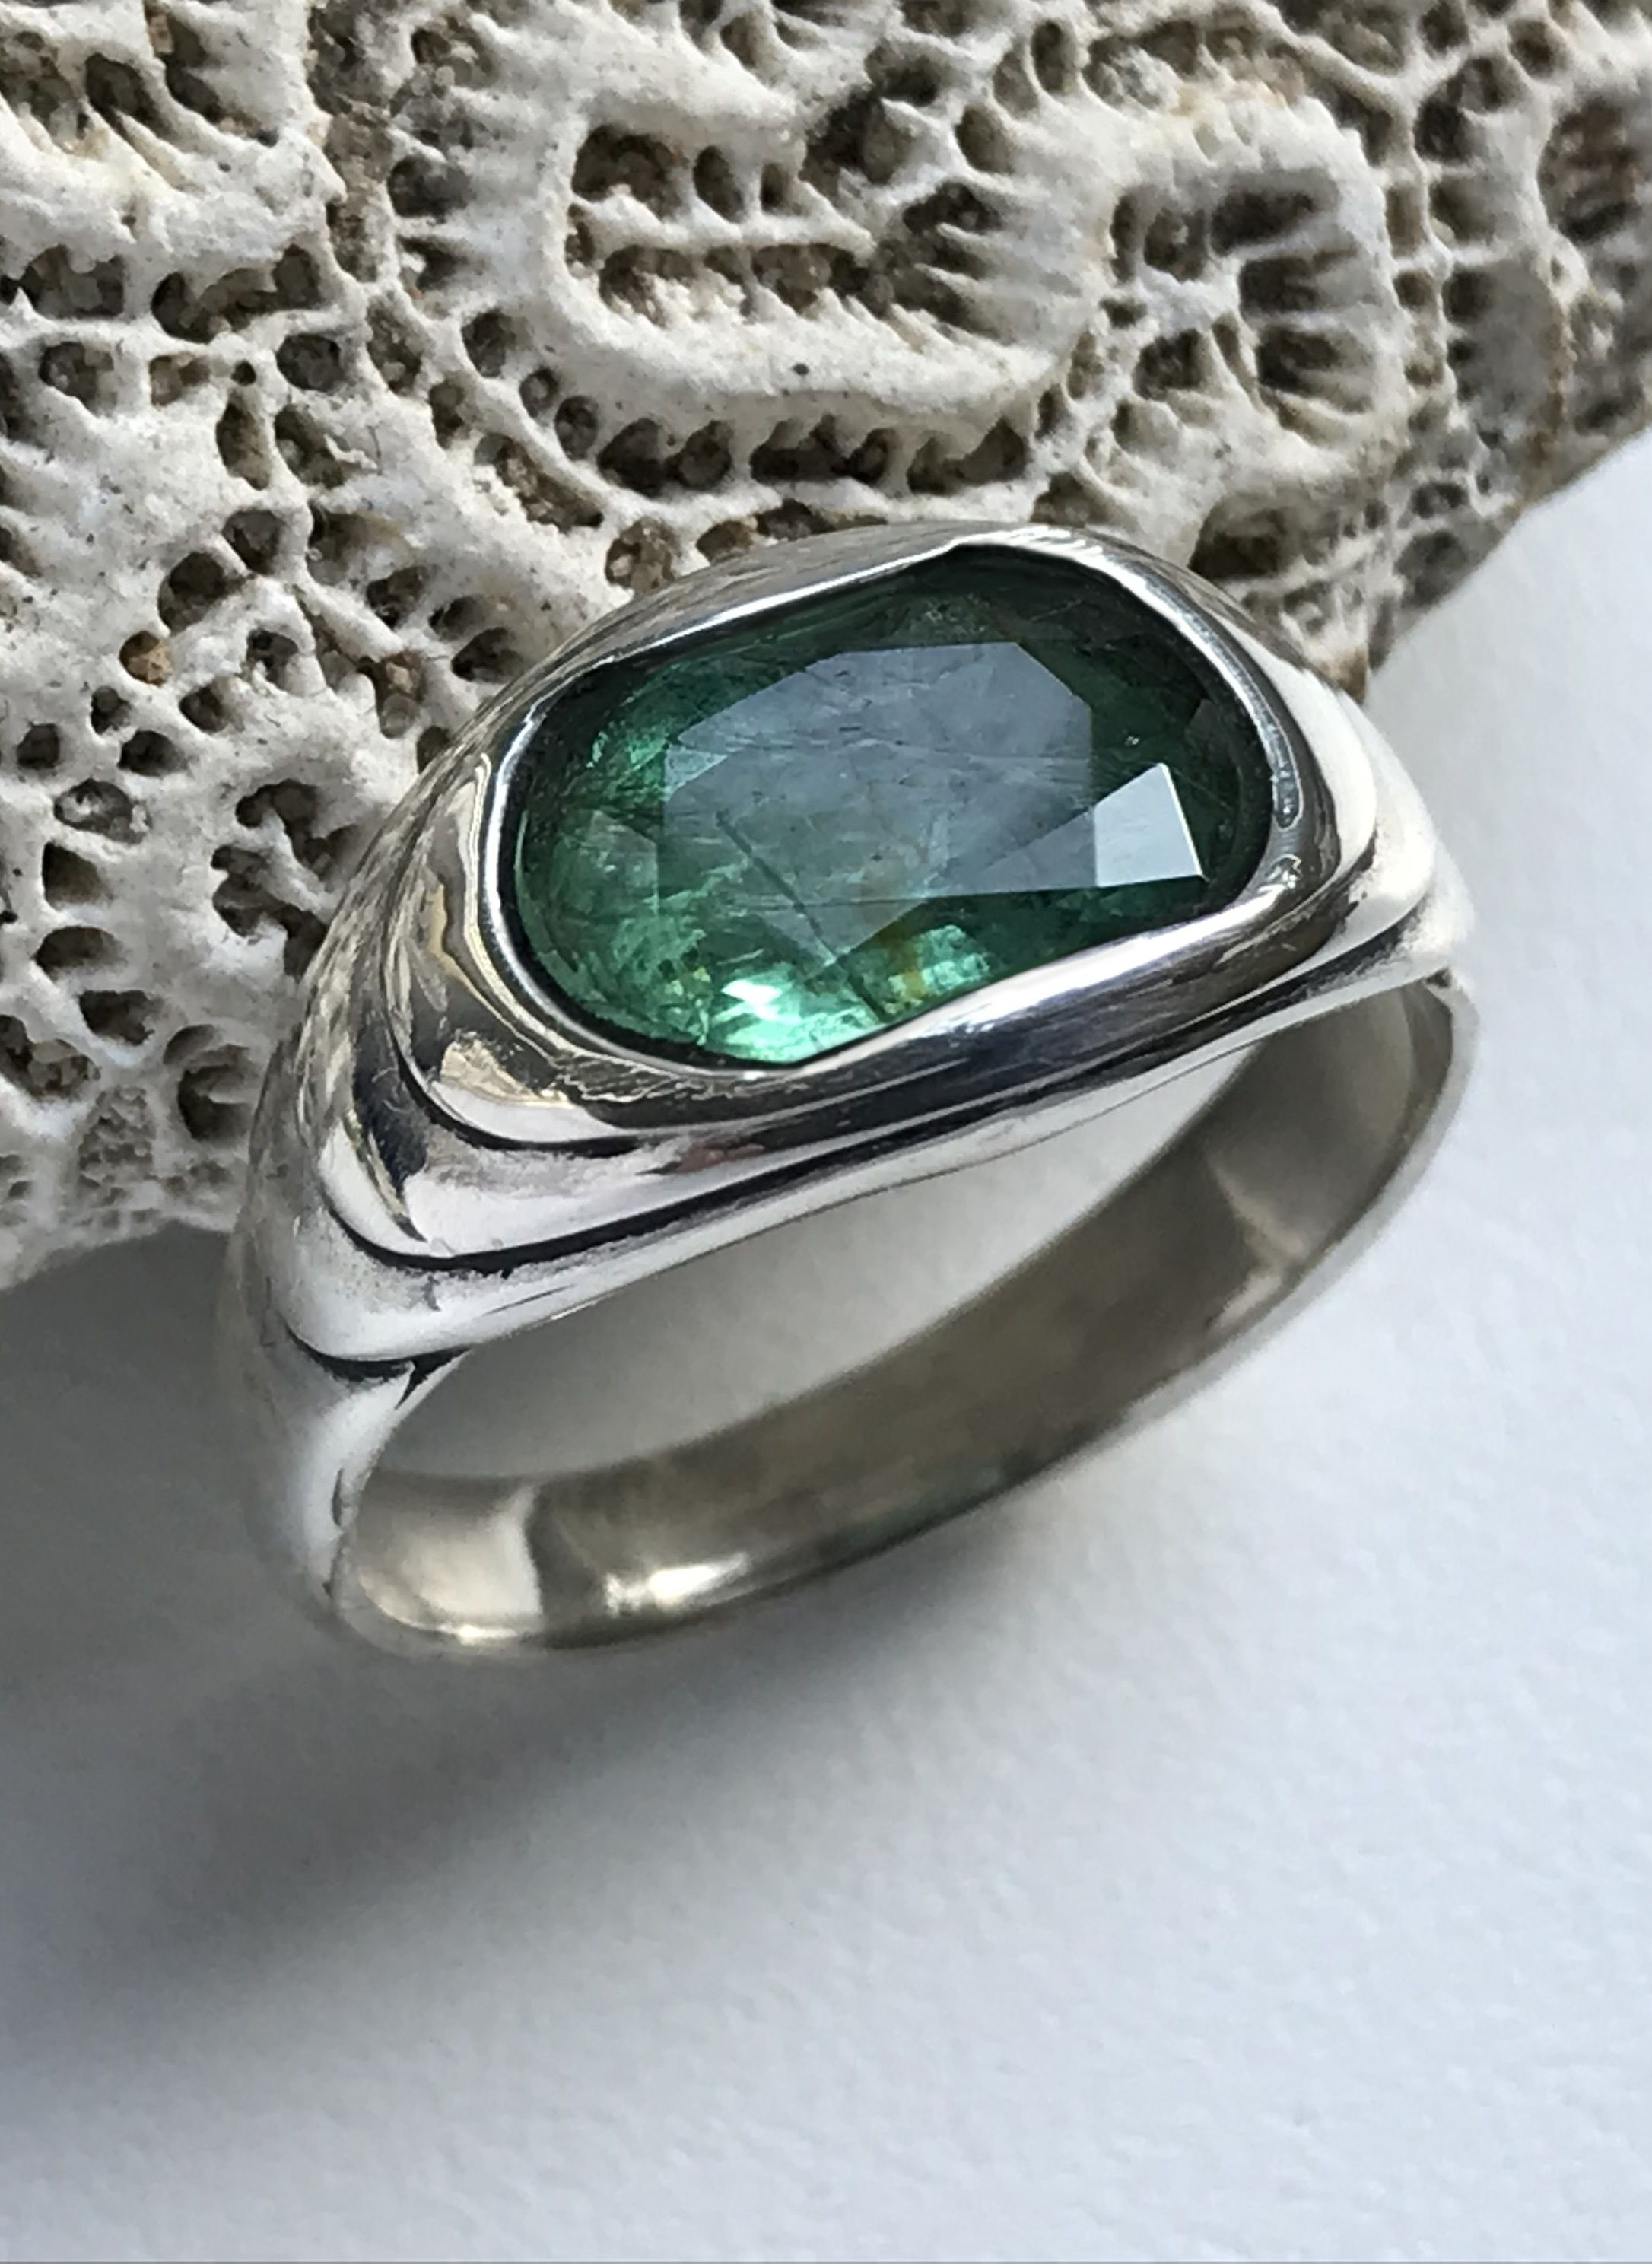 AAA QUALITY STERLING 925 SILVER HANDCRAFT JEWELRY ZAMBIAN EMERALD BAND RING